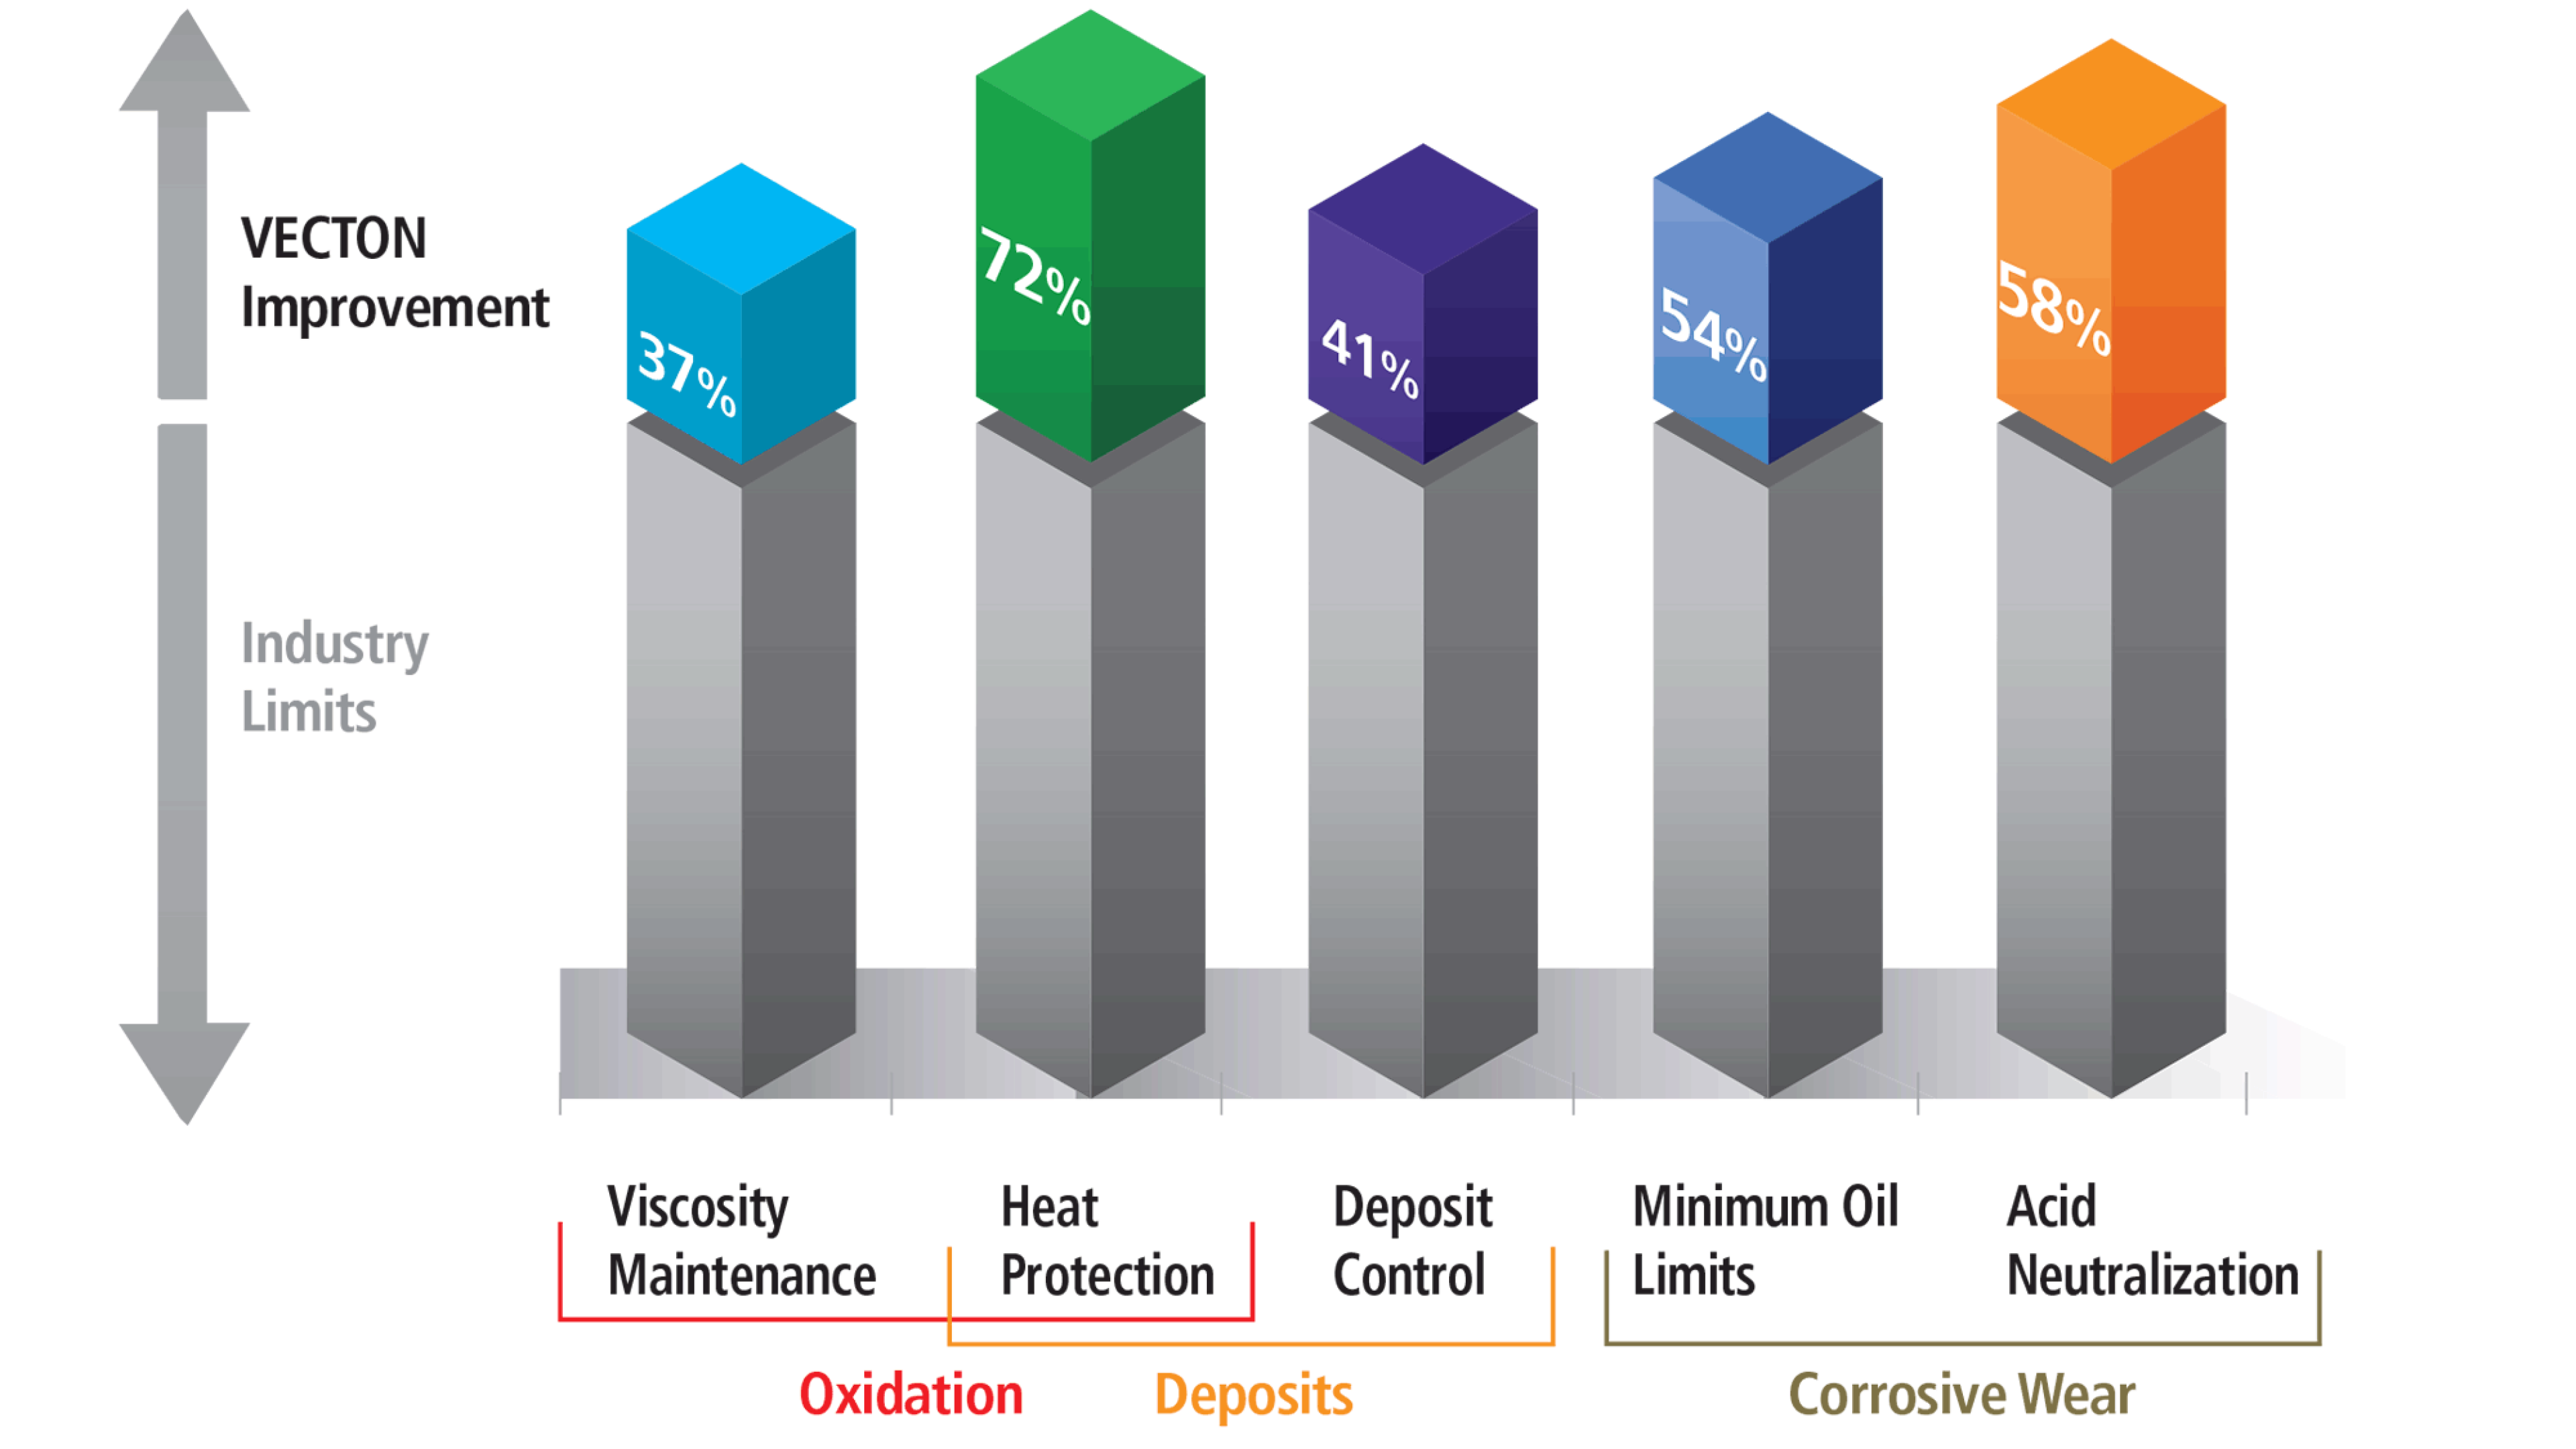 Castrol VECTON Performance Improvement by Category